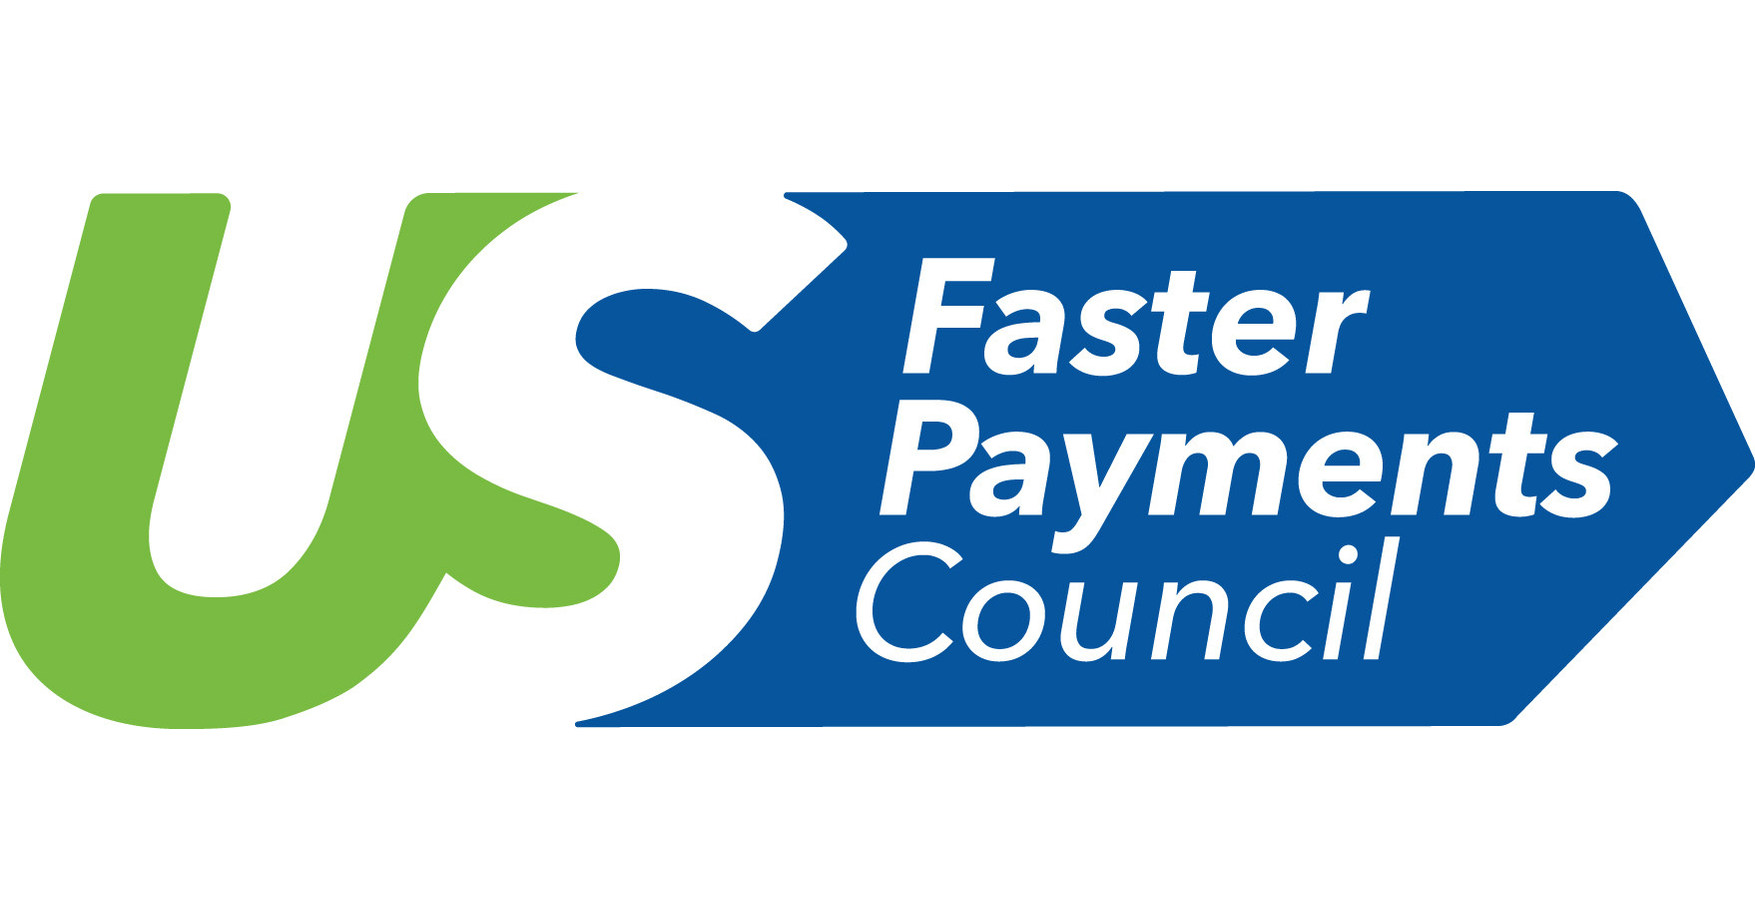 MetaBank® Joins U.S. Faster Payments Council